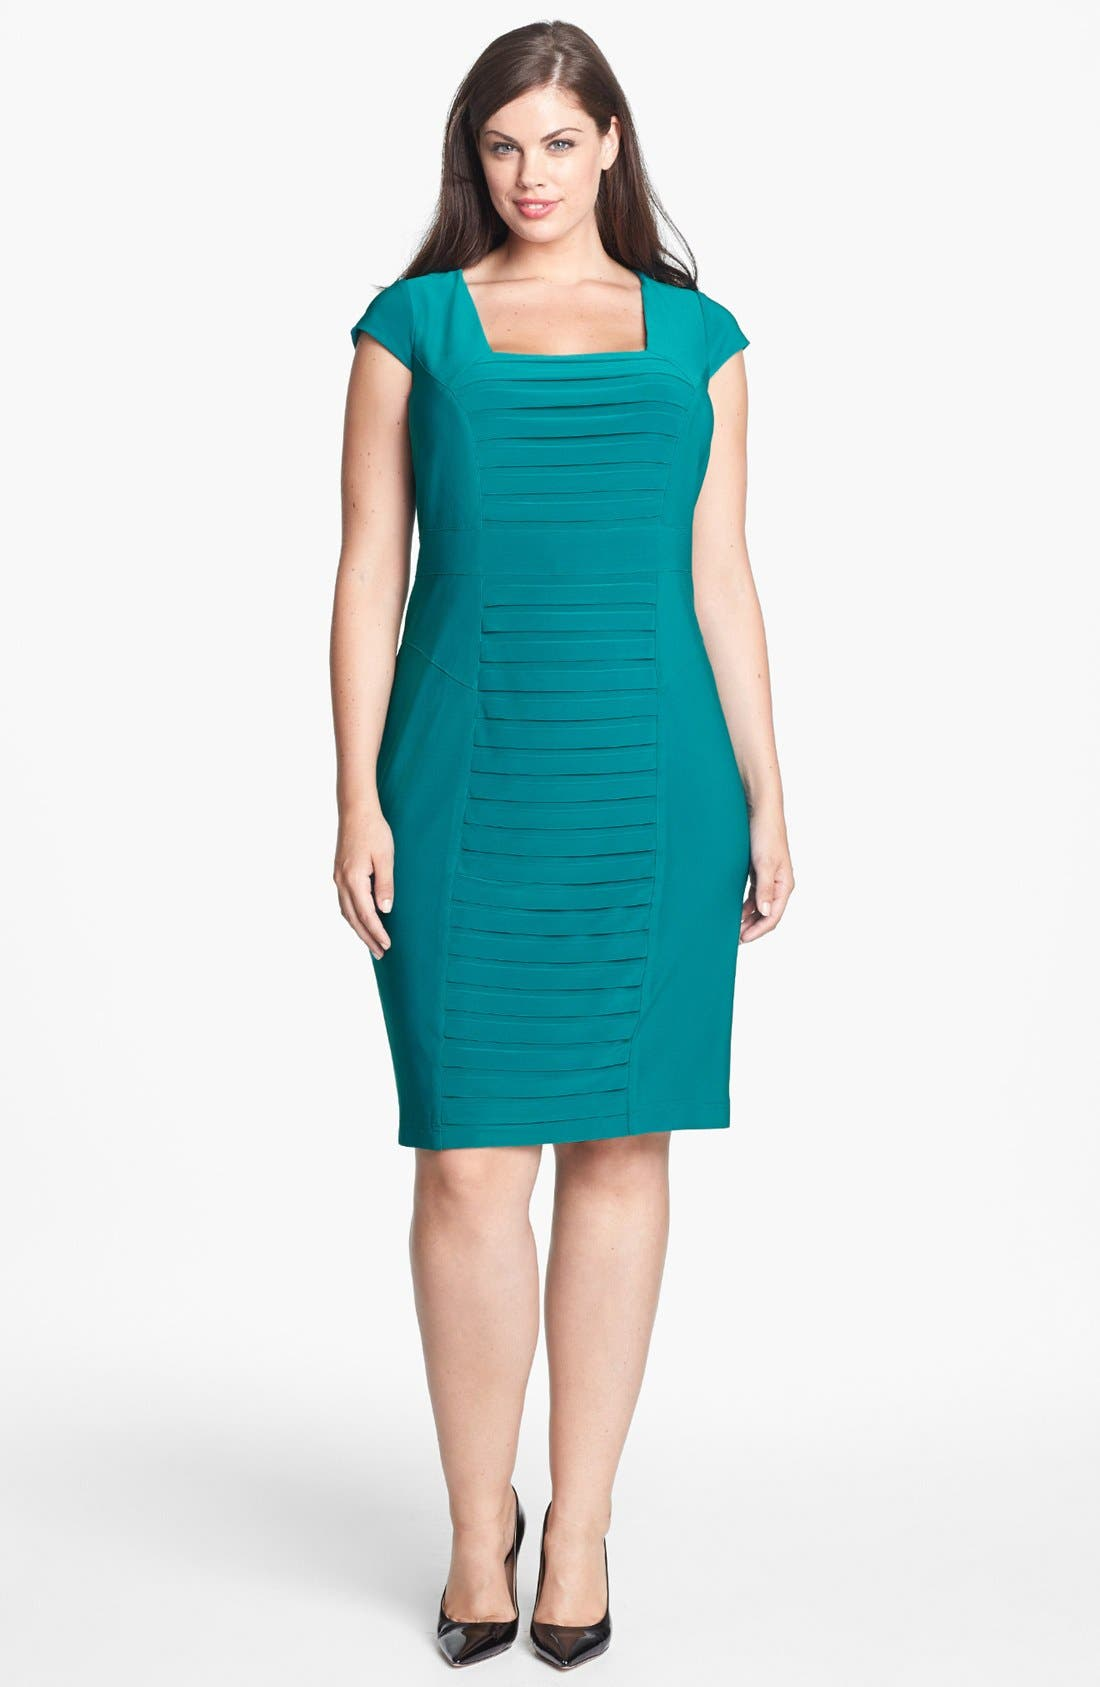 Alternate Image 1 Selected - Adrianna Papell Partial Pleat Jersey Sheath Dress (Plus Size)